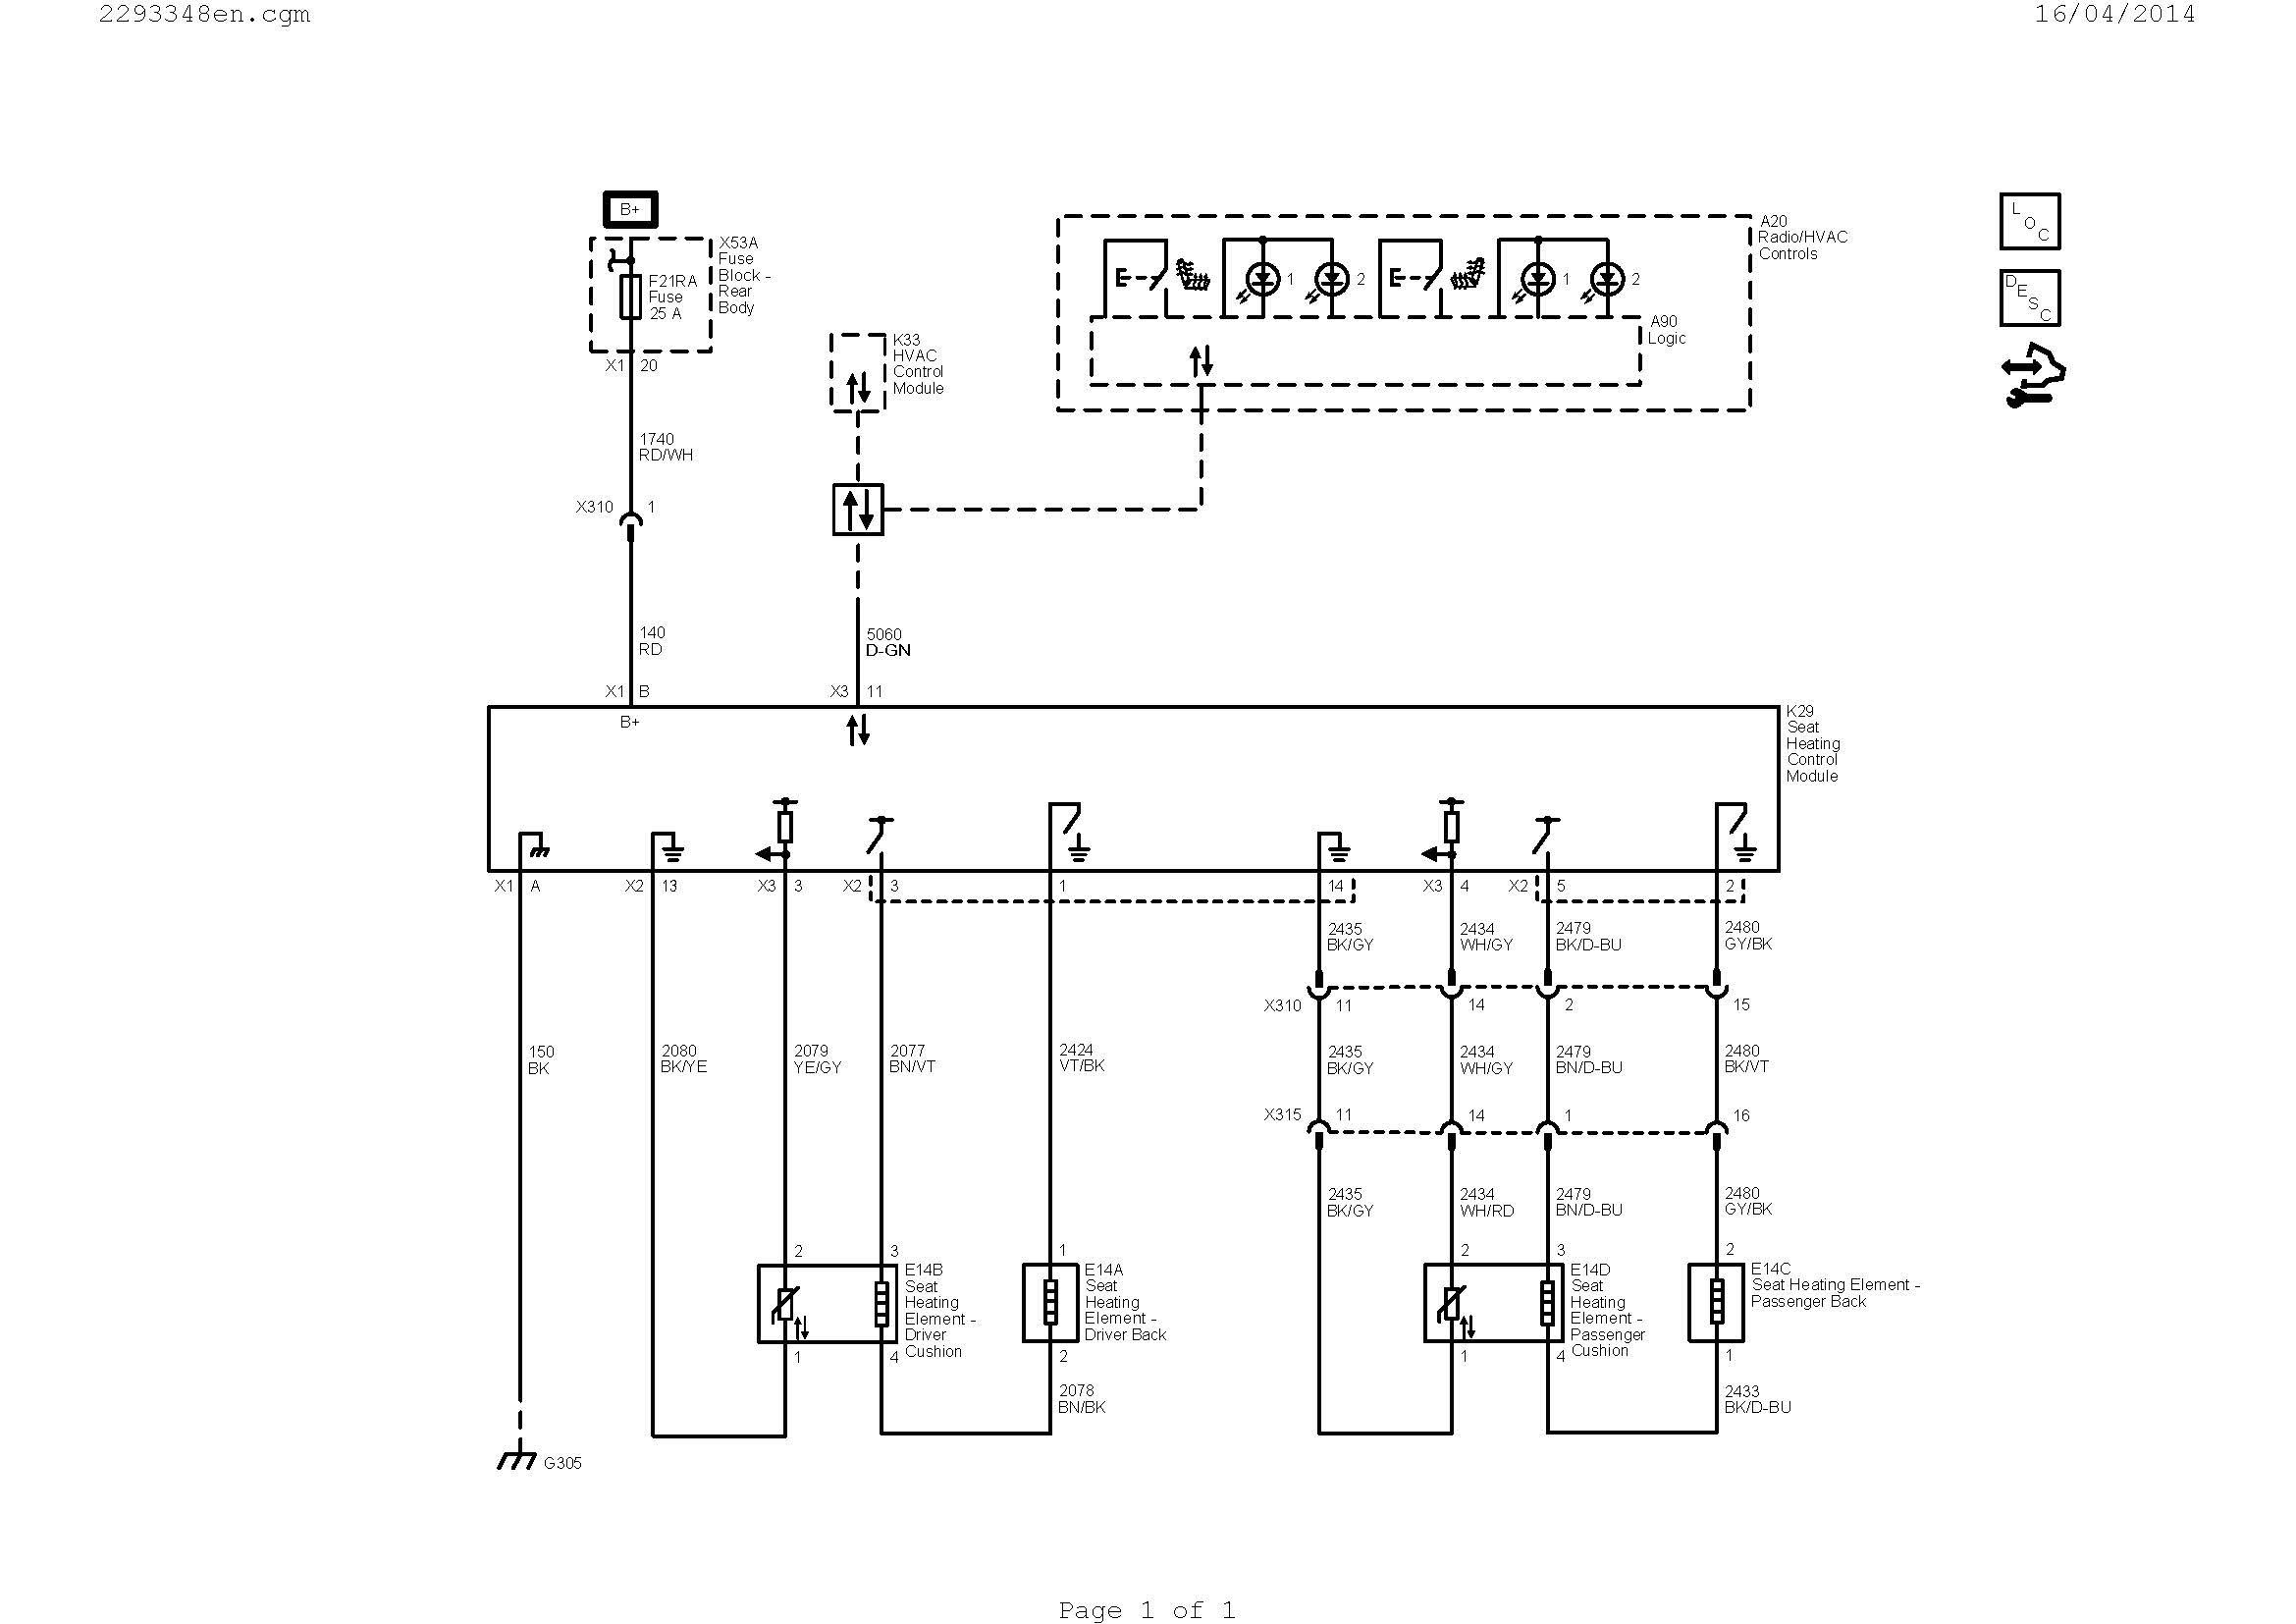 dometic thermostat wiring diagram Collection-dometic thermostat wiring diagram Download Wiring A Ac Thermostat Diagram New Wiring Diagram Ac Valid 1-i